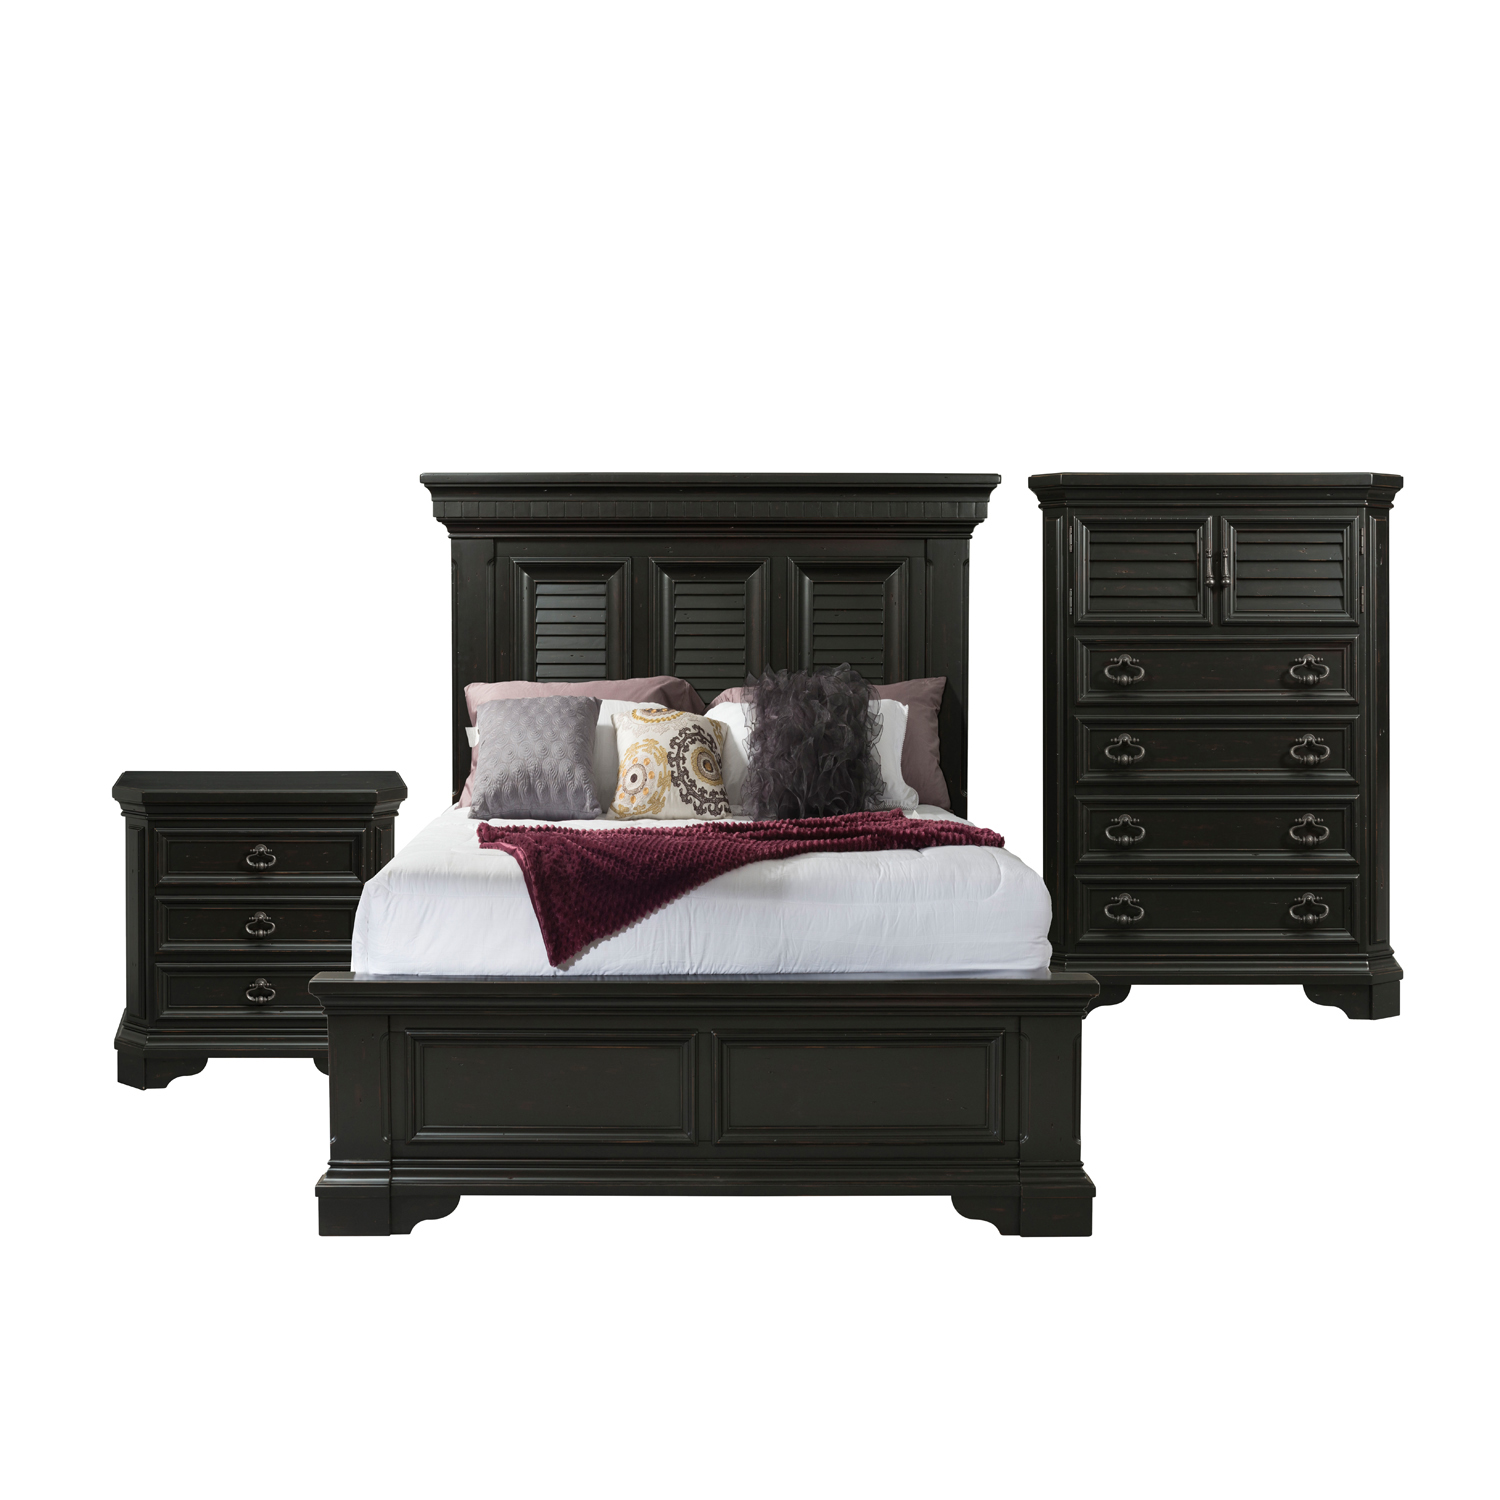 Picket House Furnishings Bradshaw Queen Storage 3pc Bedroom Set, Espresso by Elements International Group